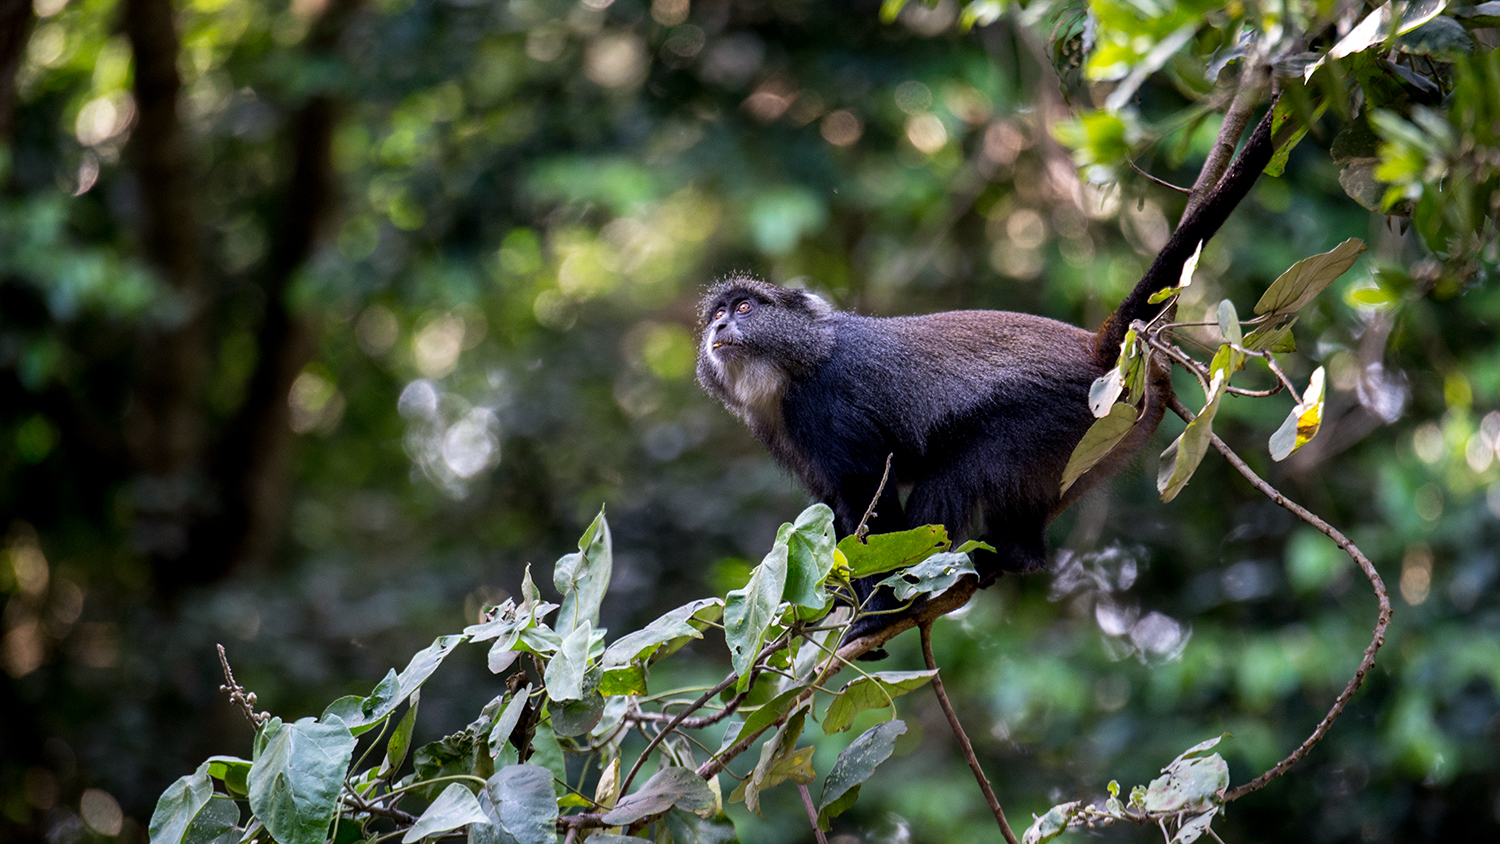 A little Sykes Monkey eyeing a branch and contemplating if he could make the jump for more leaves to nibble.